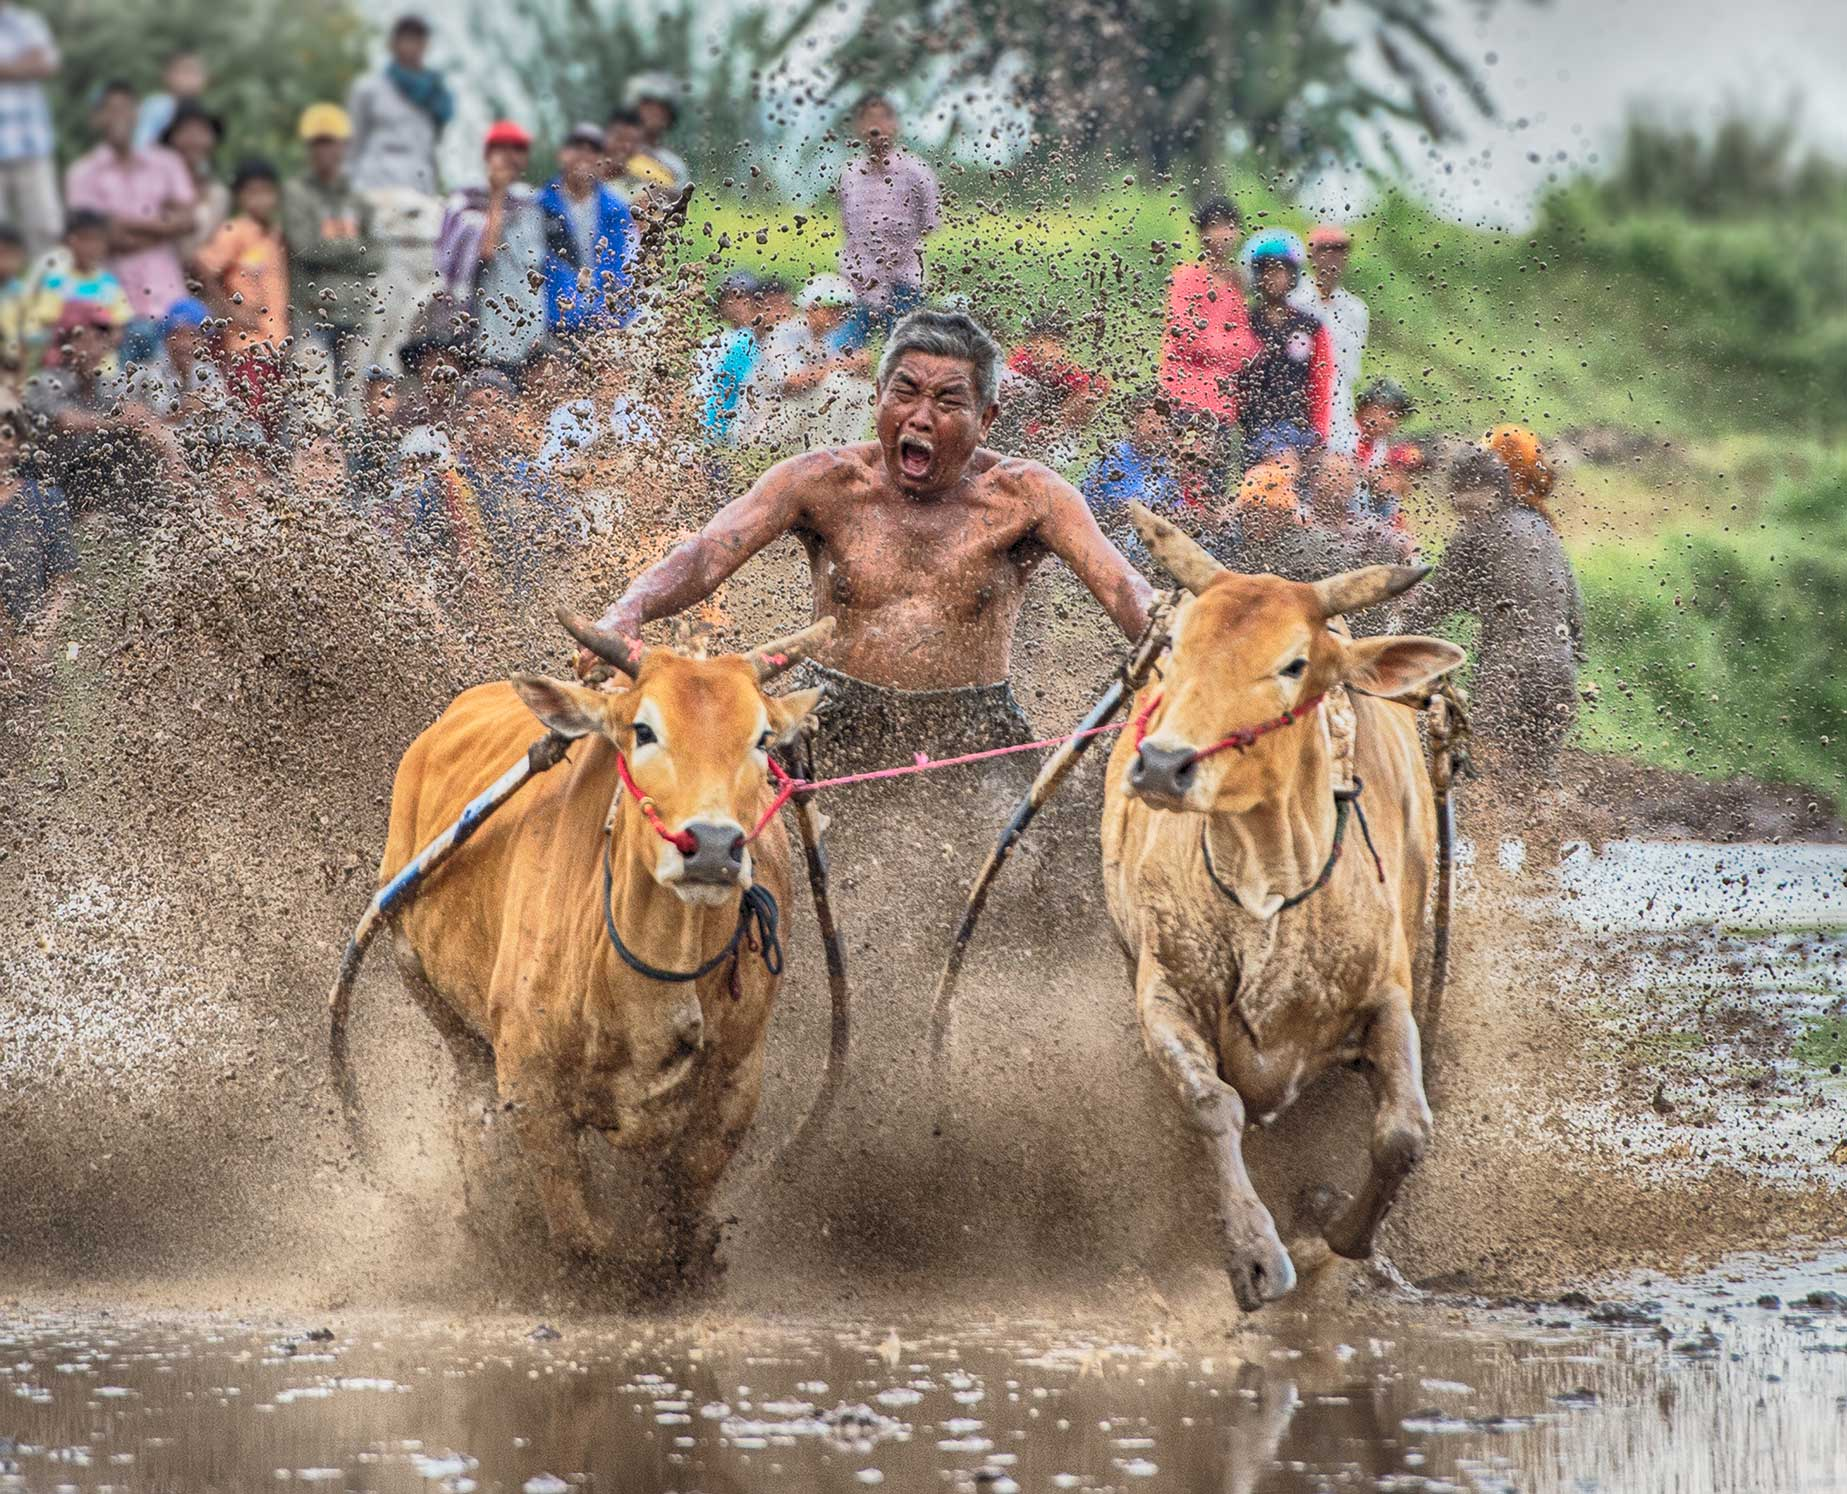 Bull Racer 2, West Sumatra, Indonesia